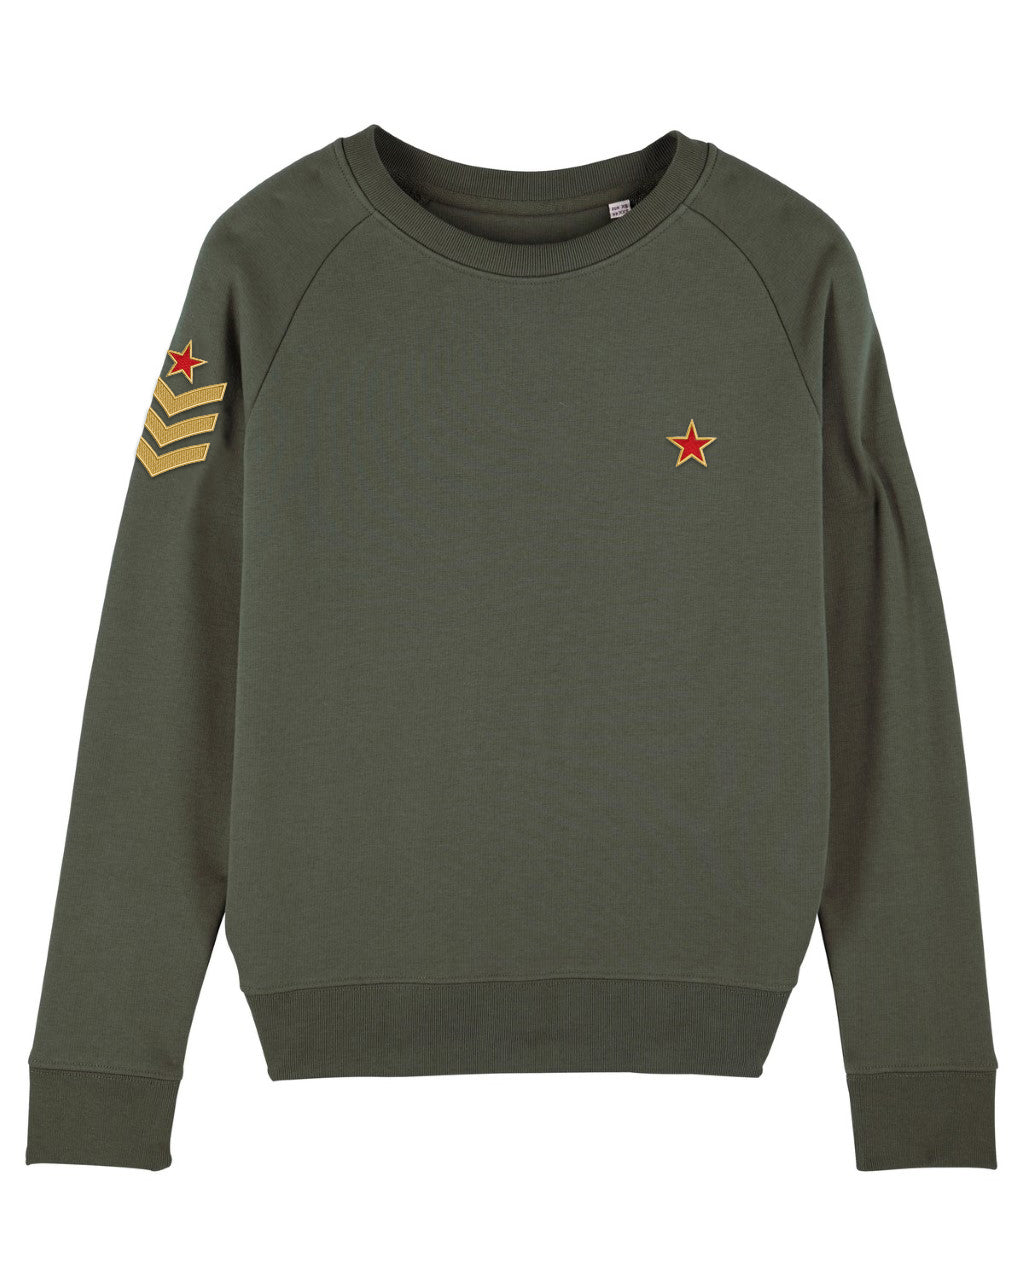 Khaki Military Sweatshirt